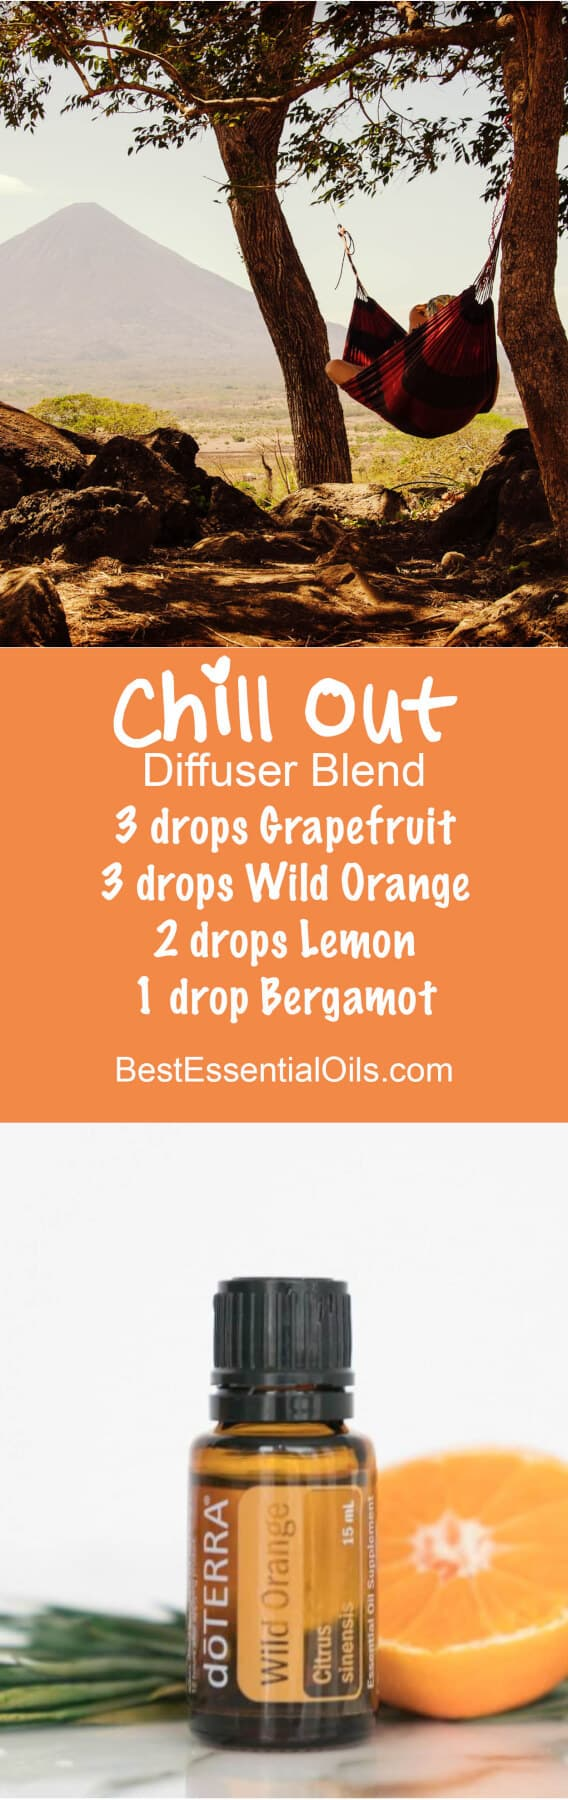 doTERRA Chill Out Diffuser Blend